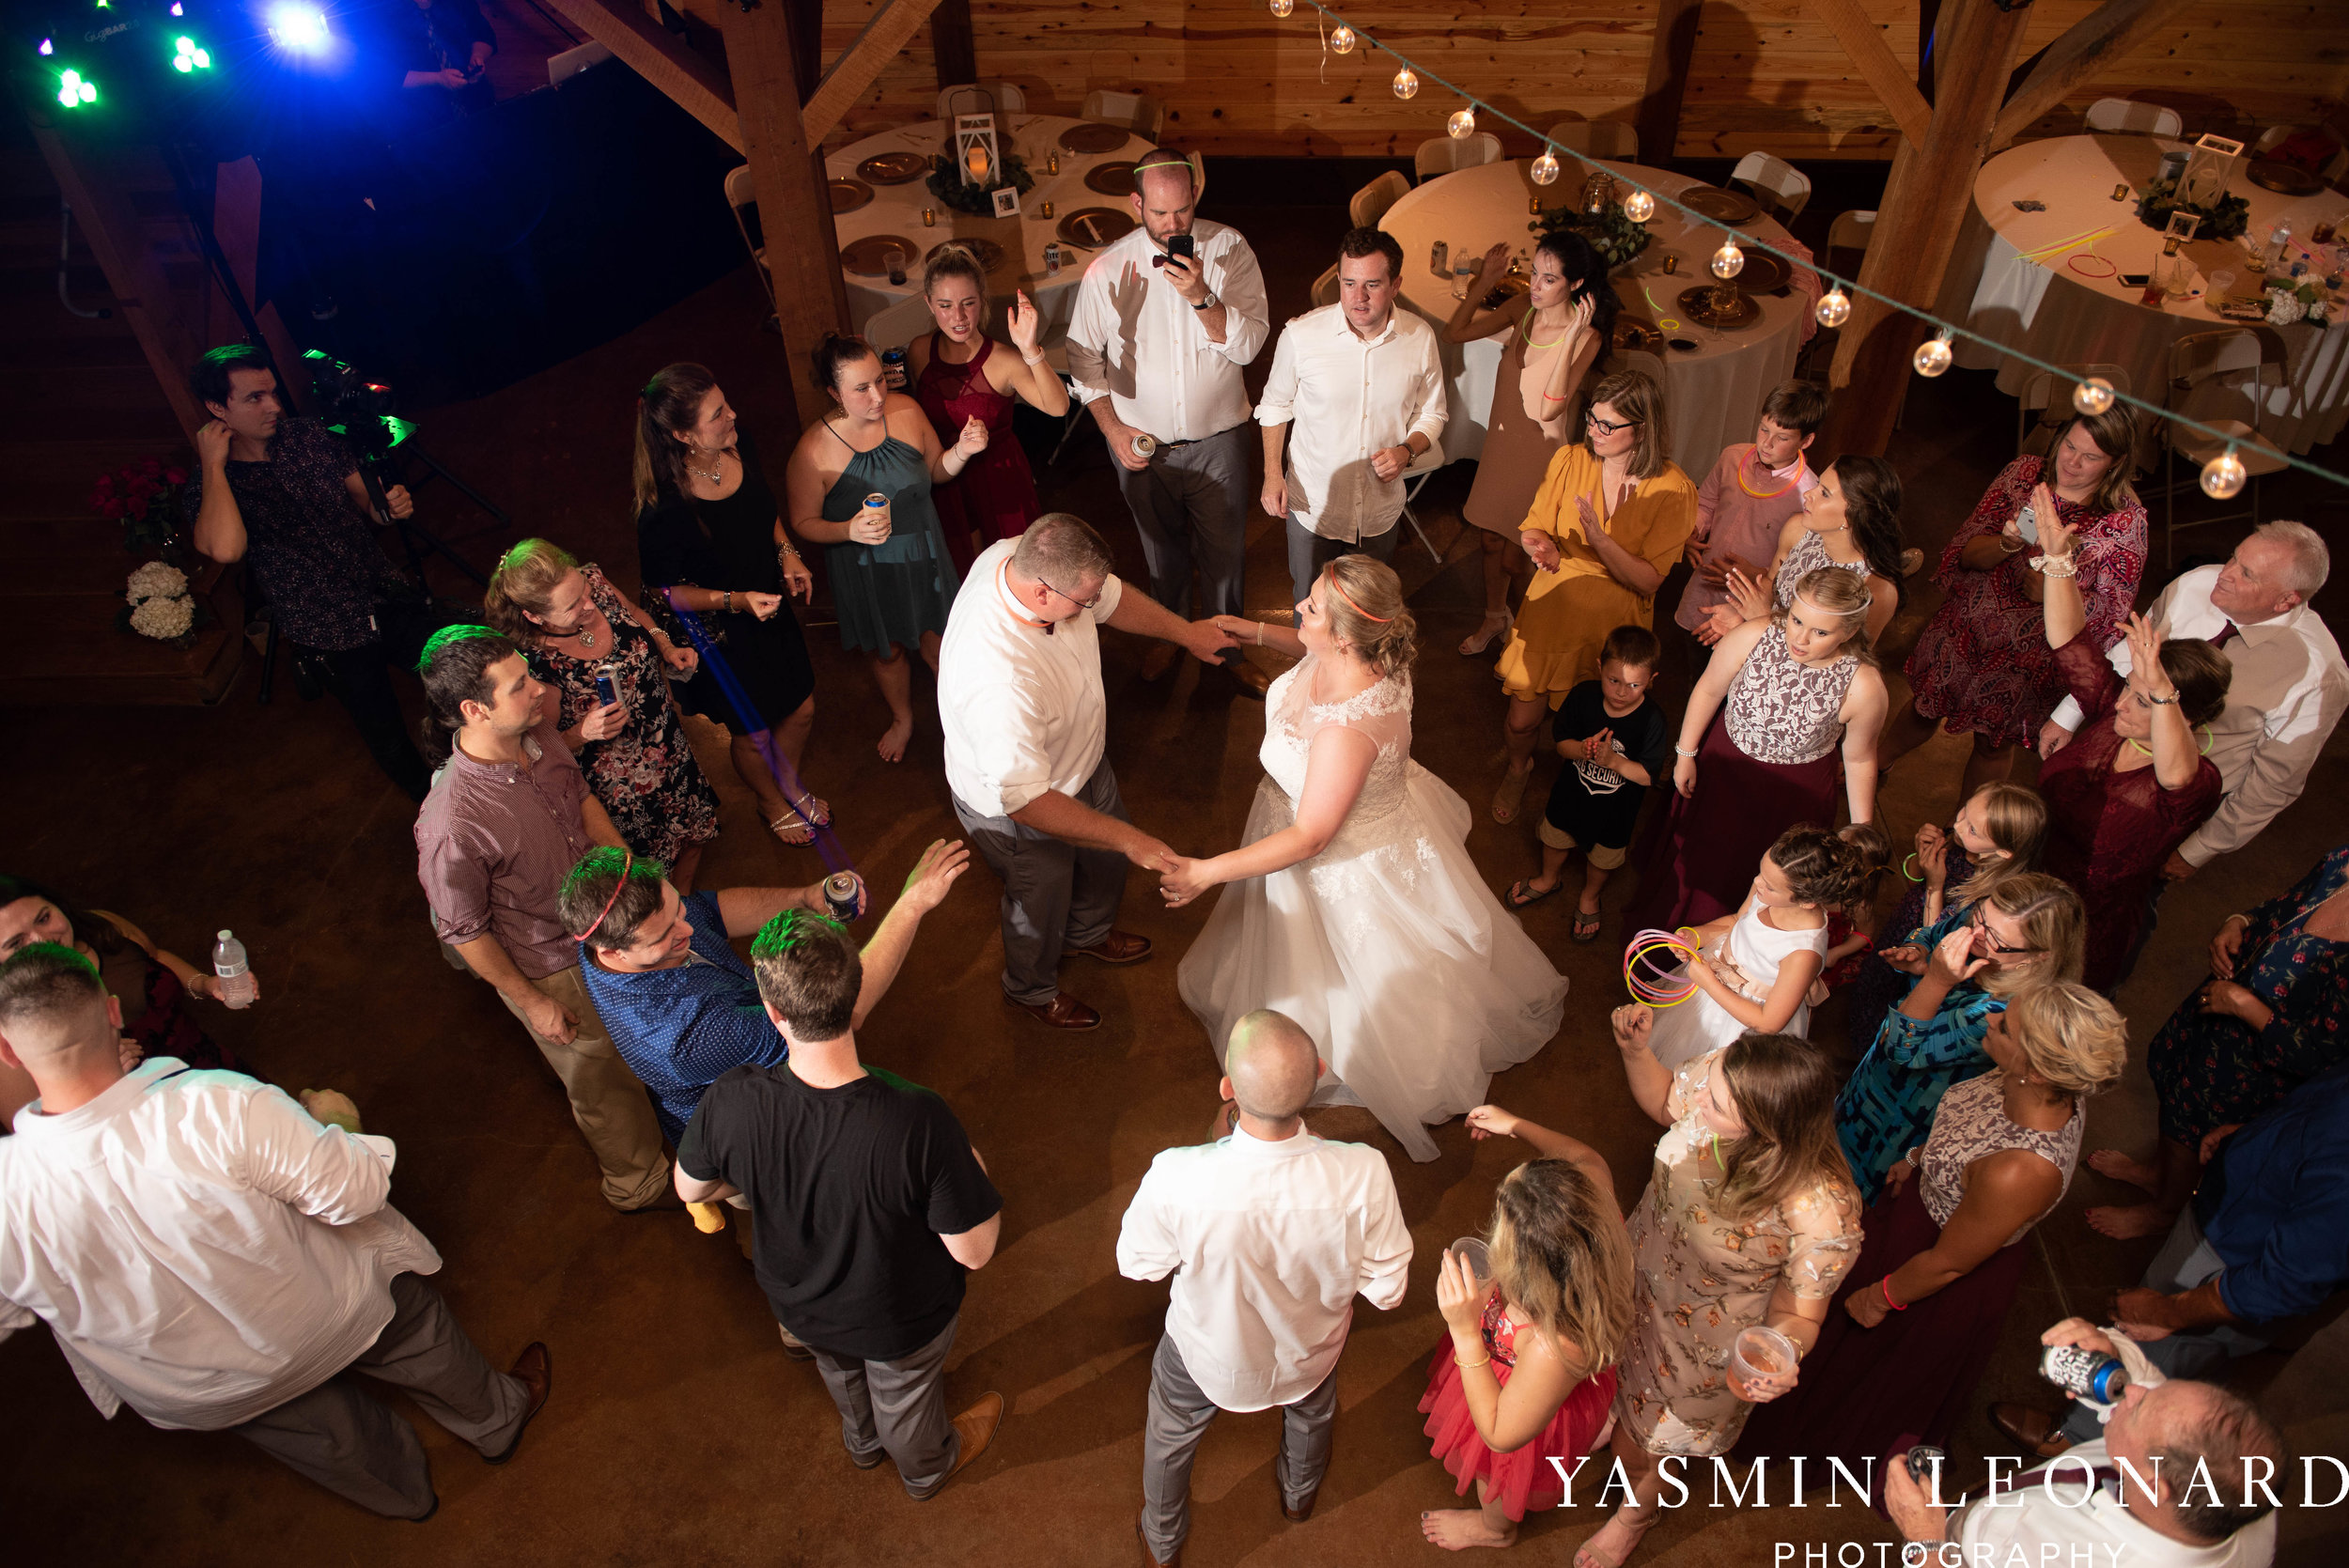 Danner Farms - NC Wedding Venues - NC Barns - Statesville NC - NC Wedding Photographer - High Point Wedding Photographer - Yasmin Leonard Photography-99.jpg